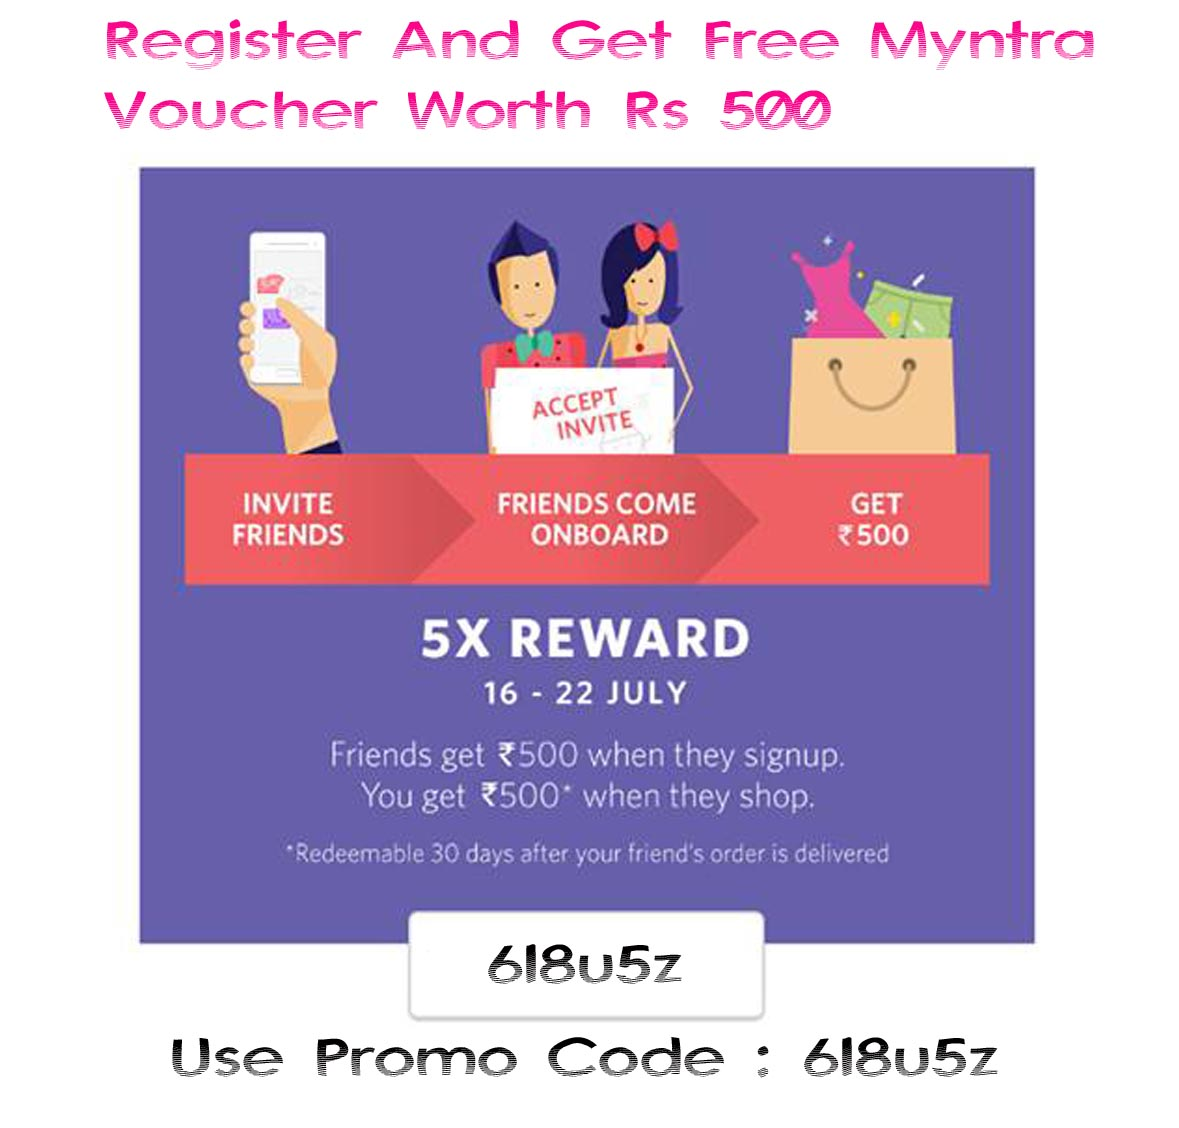 Get Myntra Voucher Rs 500 FREE - Freebie Giveaway Contest - Win